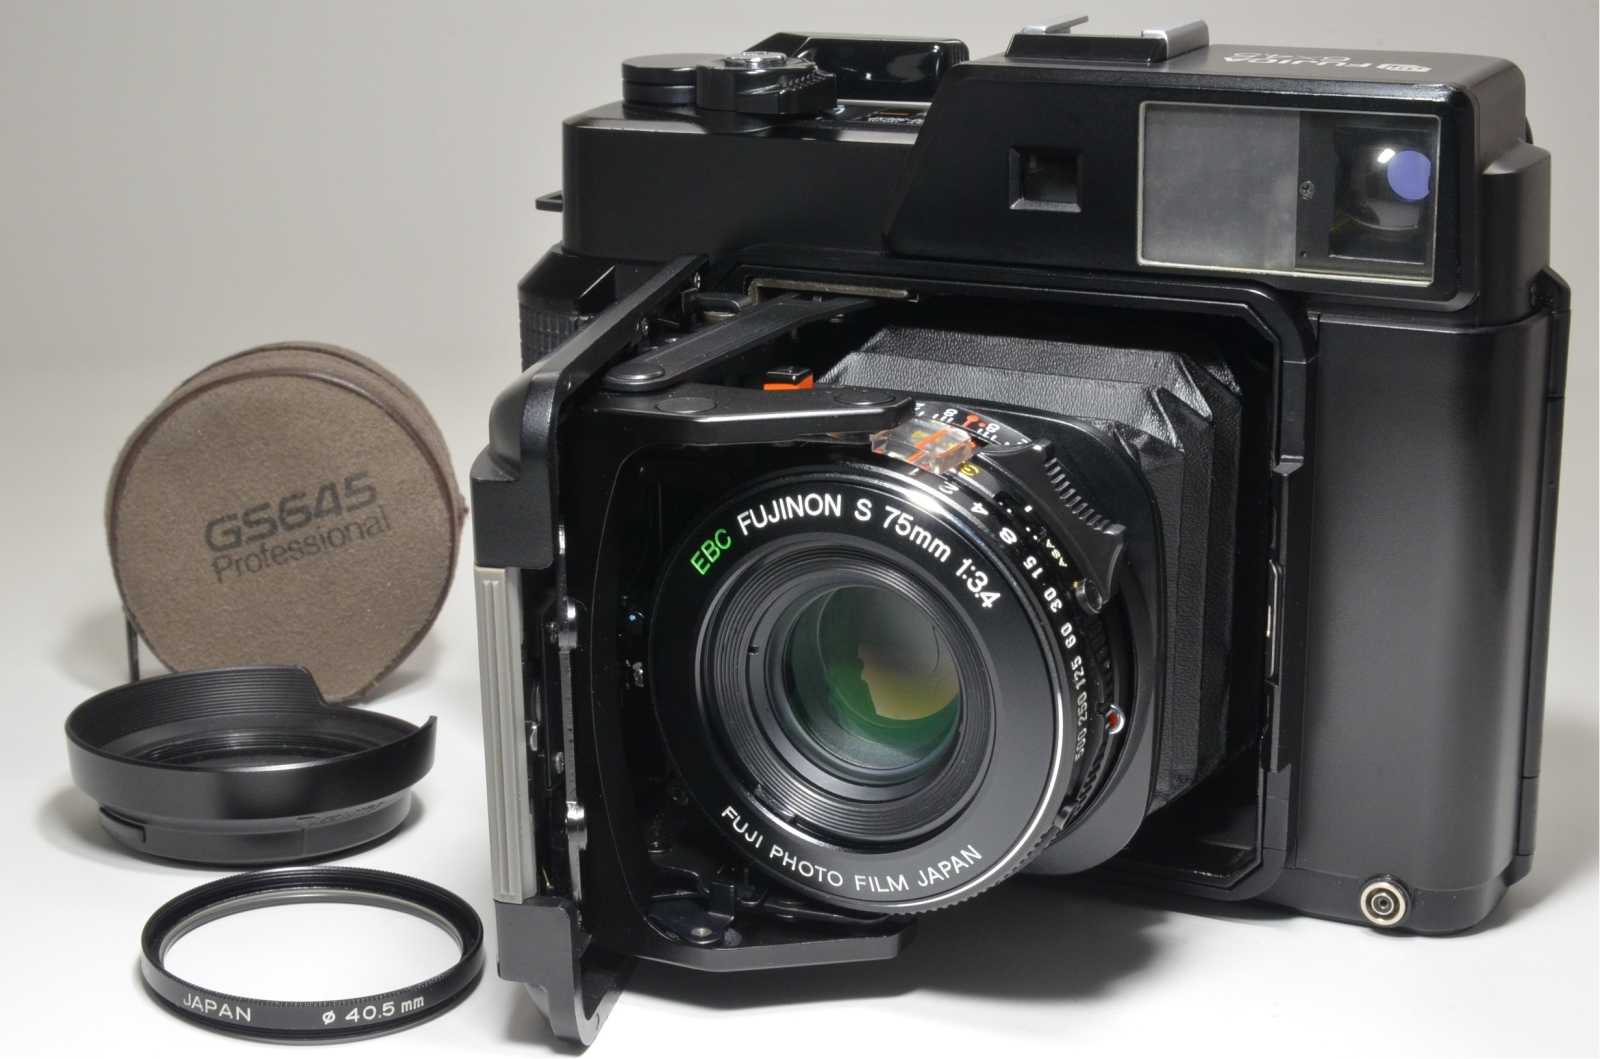 fujifilm fujica gs645 film camera 75mm f3.4 w/ lens filter and hood